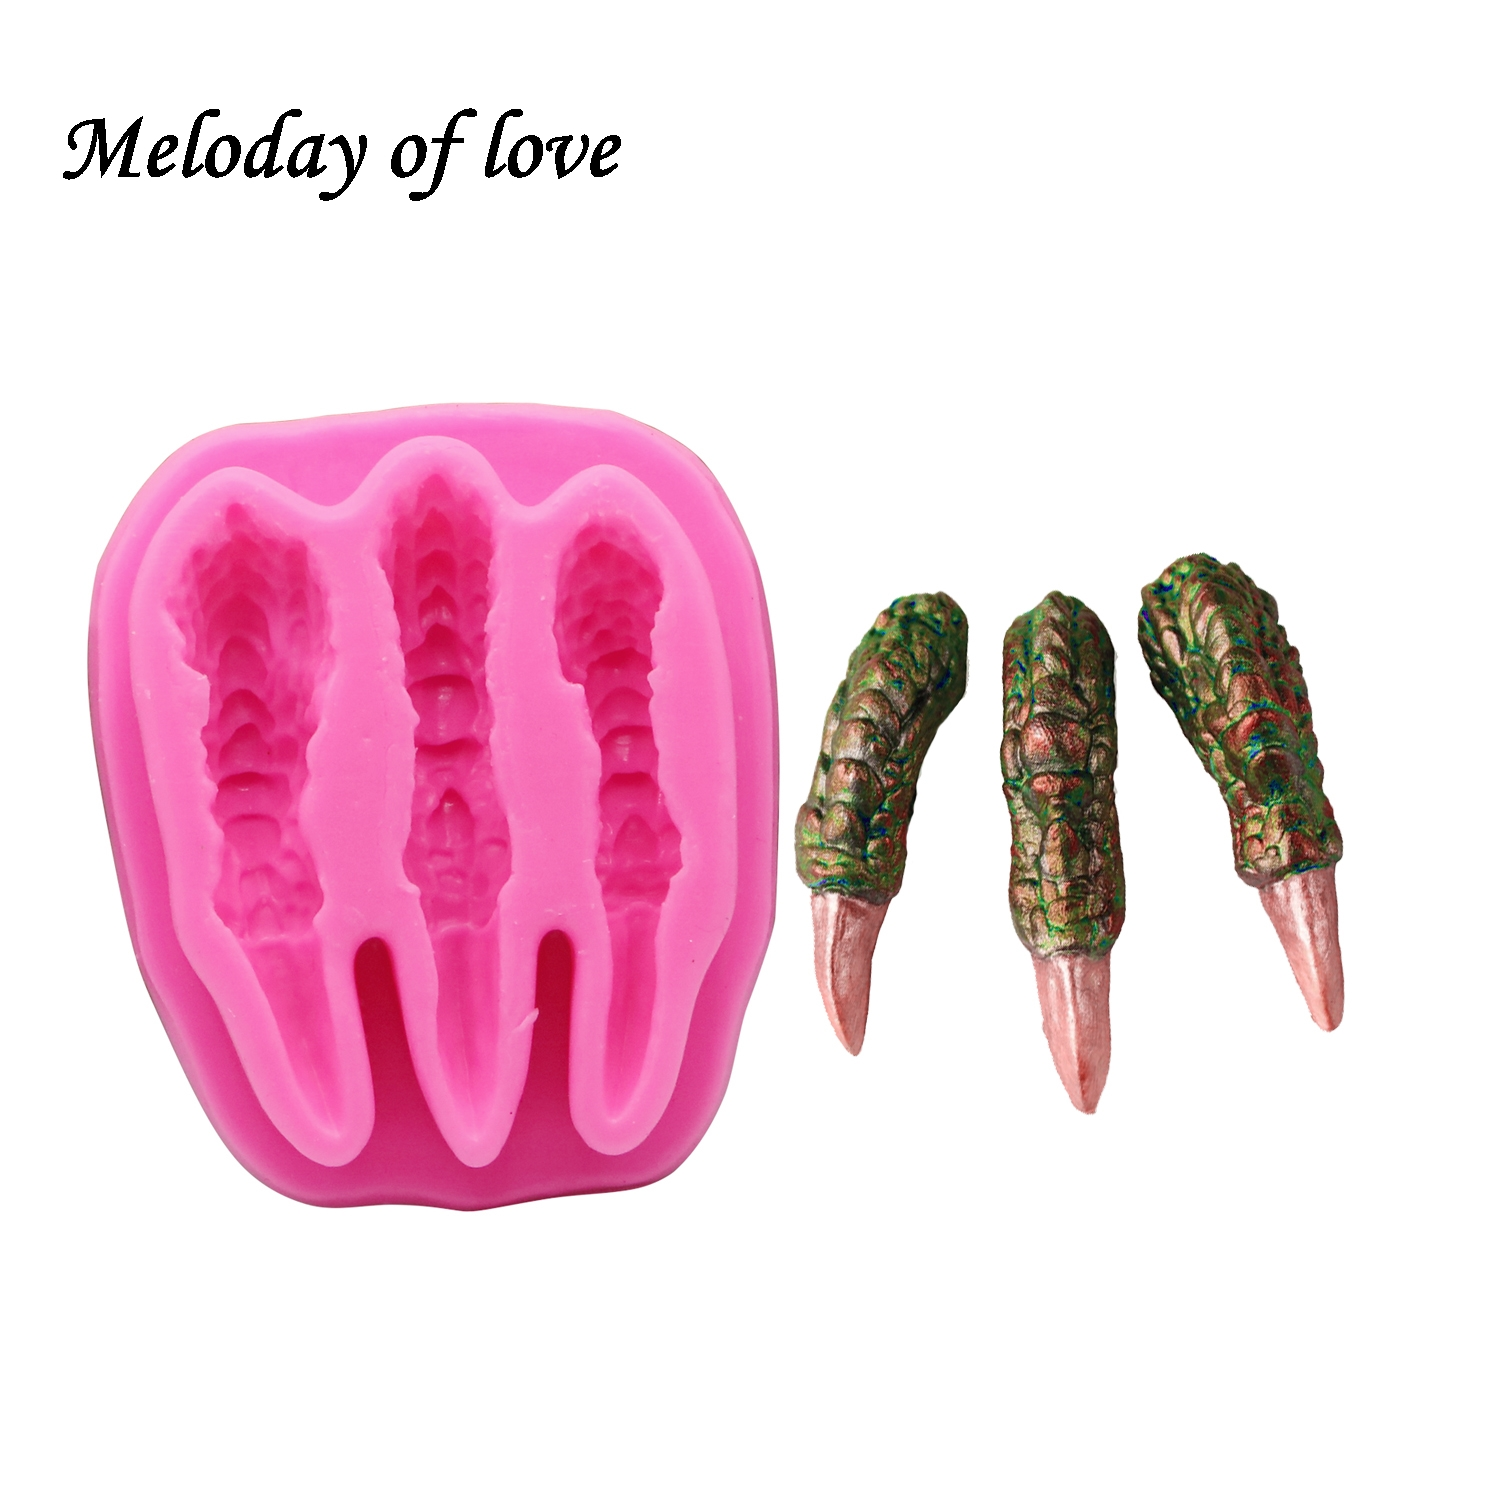 Cake Decorating Handmade Supply Silicone Mold for Binky Baby Soft Silicone Mold for Fondant Polymer Clay